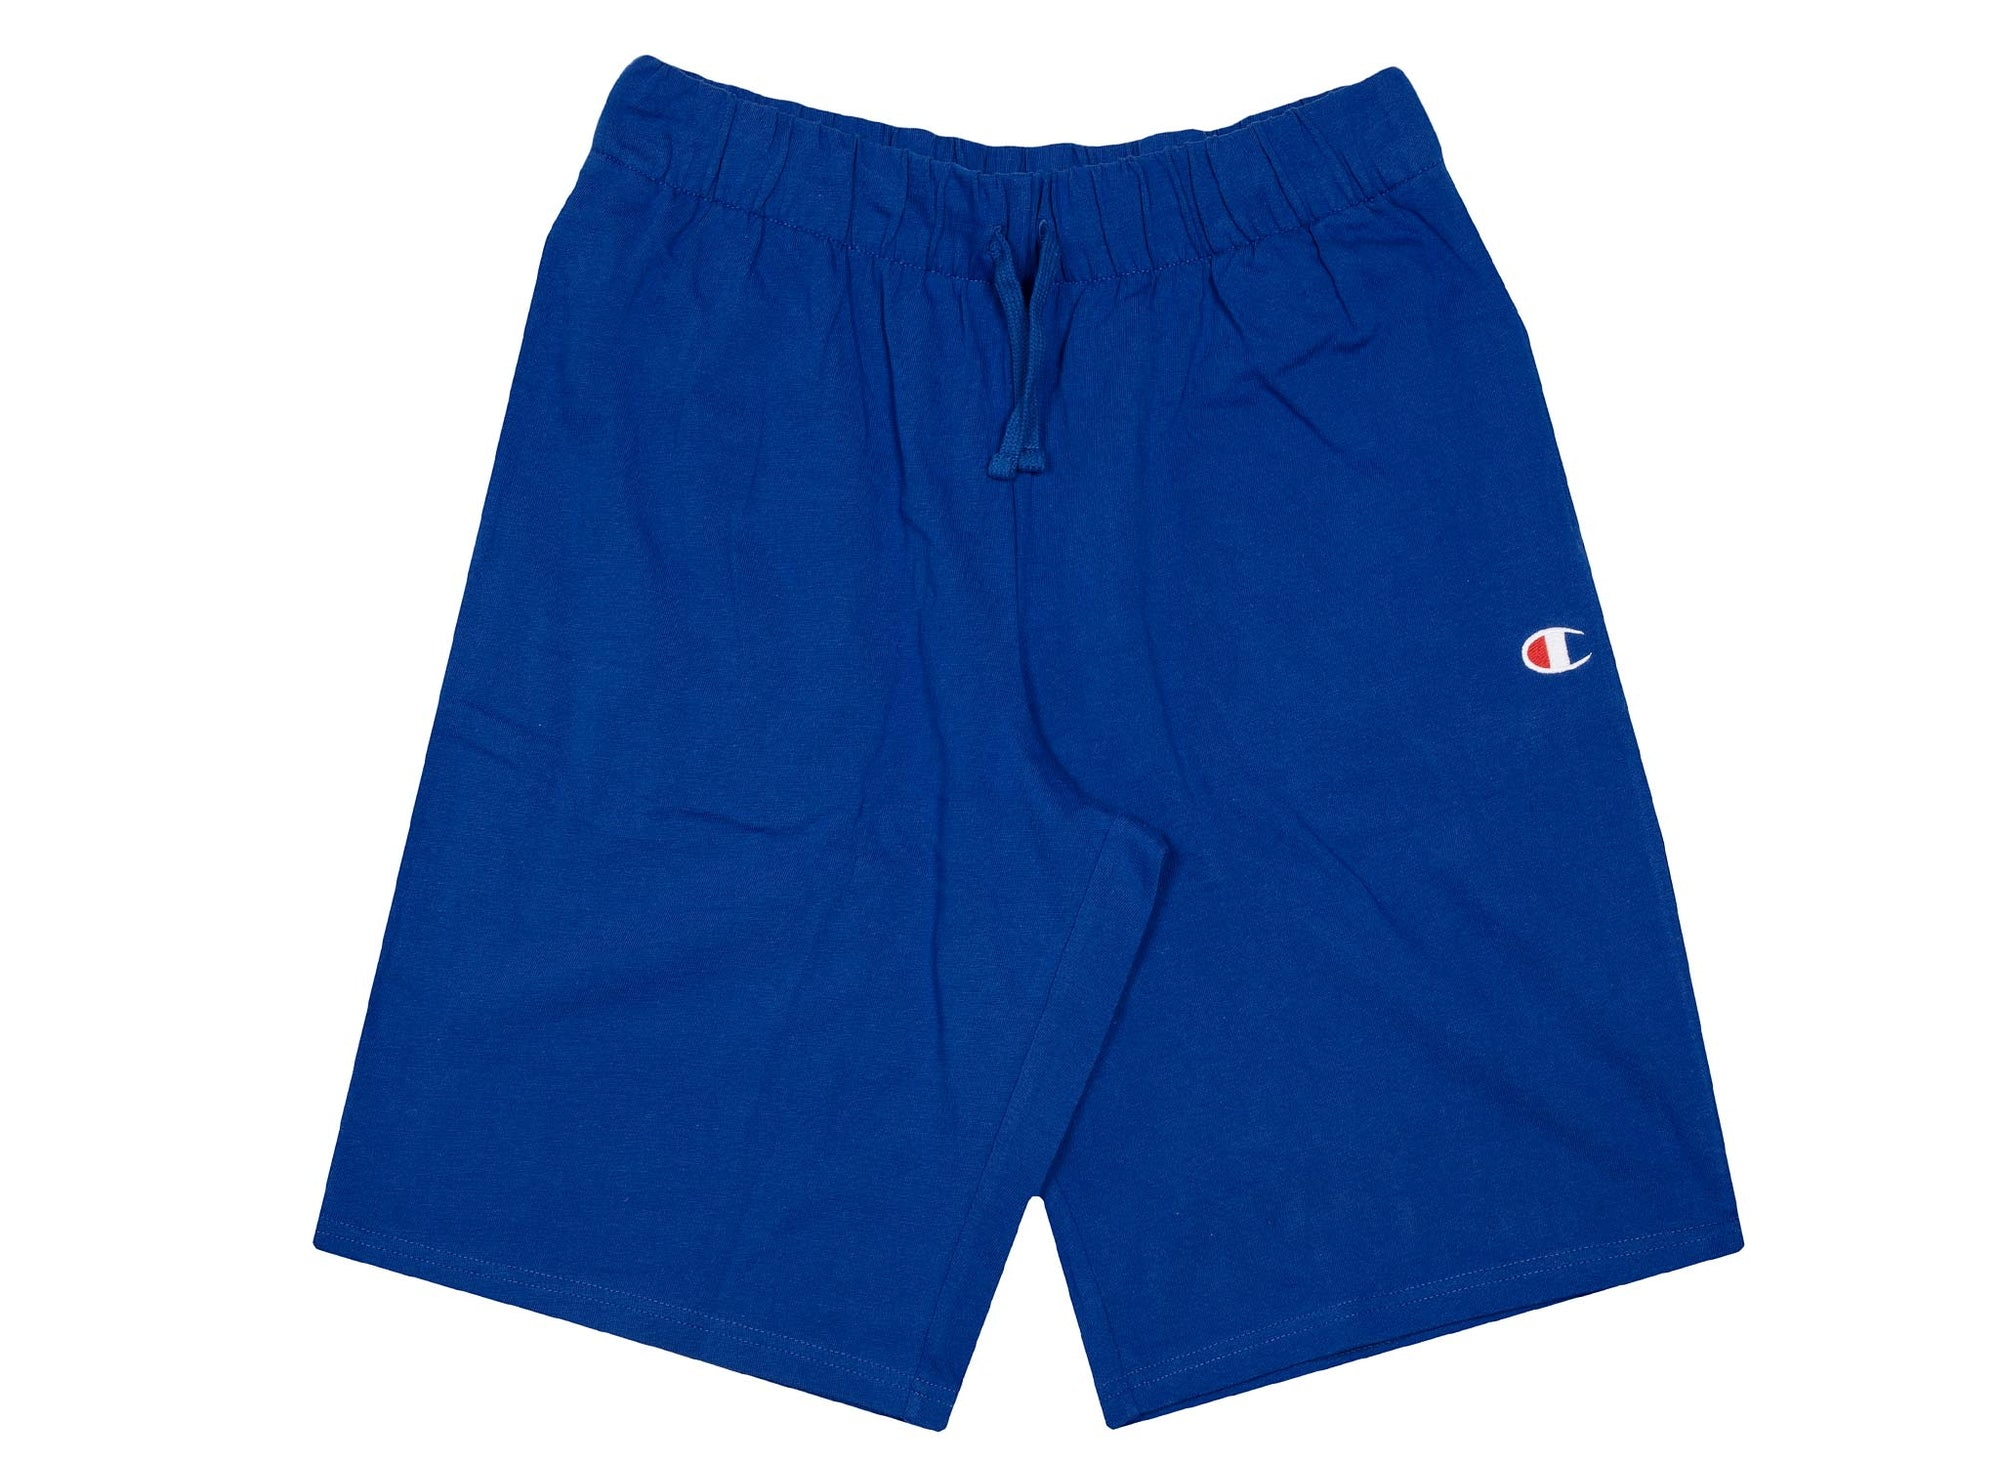 Champion Men's Jersey Jam Shorts - Surf The Web